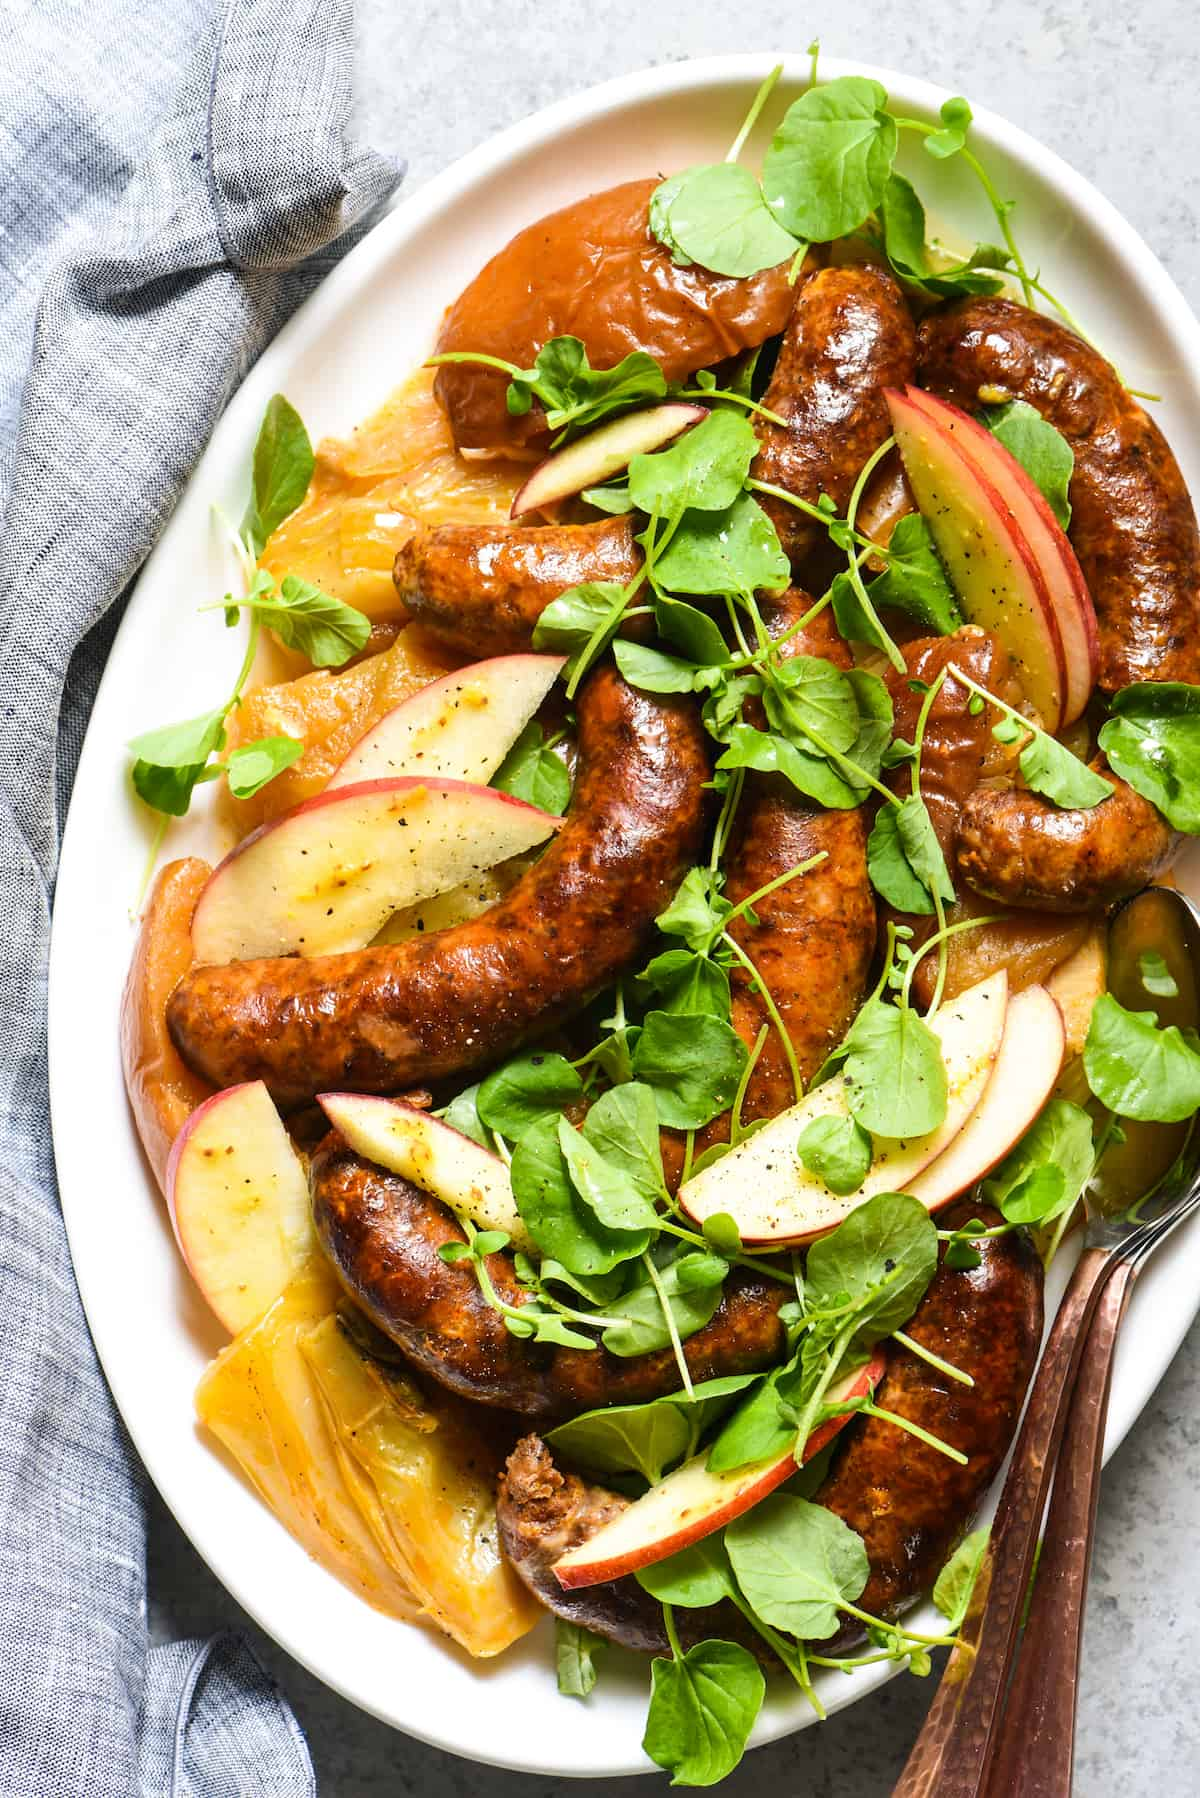 """Slow Cooker Sausage, Apples & Fennel - A simple but flavorful slow cooker dinner for the """"home chef."""" 